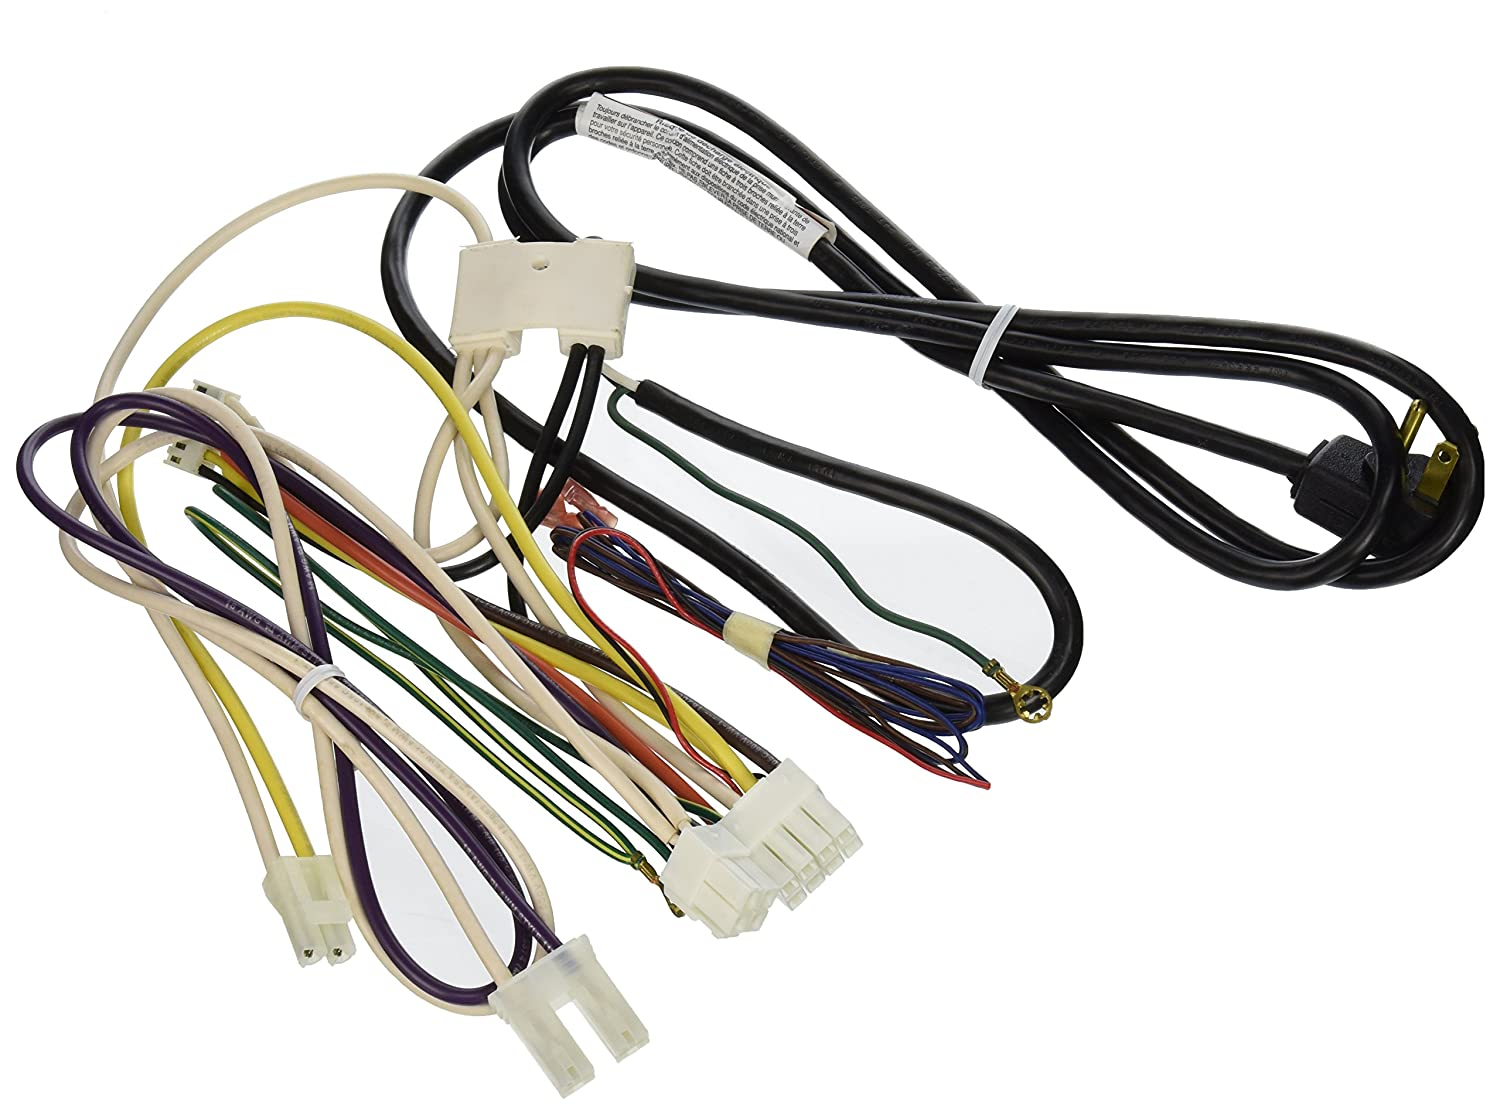 Frigidaire 297083200 Freezer Wire Harness Home Improvement Wiring A Garbage Disposal And Dishwasher Electrical Share The